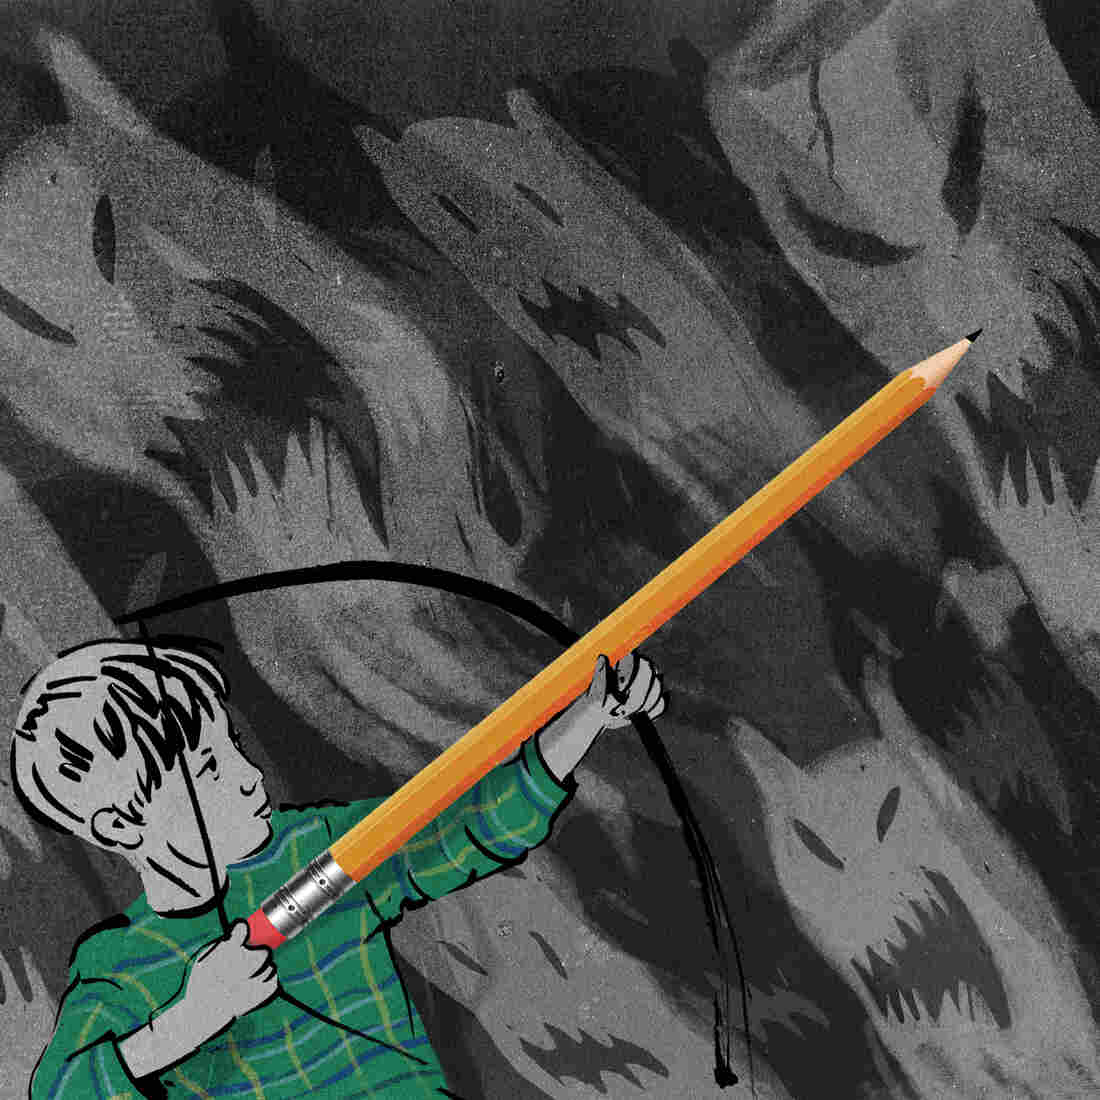 The power of the pencil: Writing about a troubling event in the past can help recast it in a more positive way.